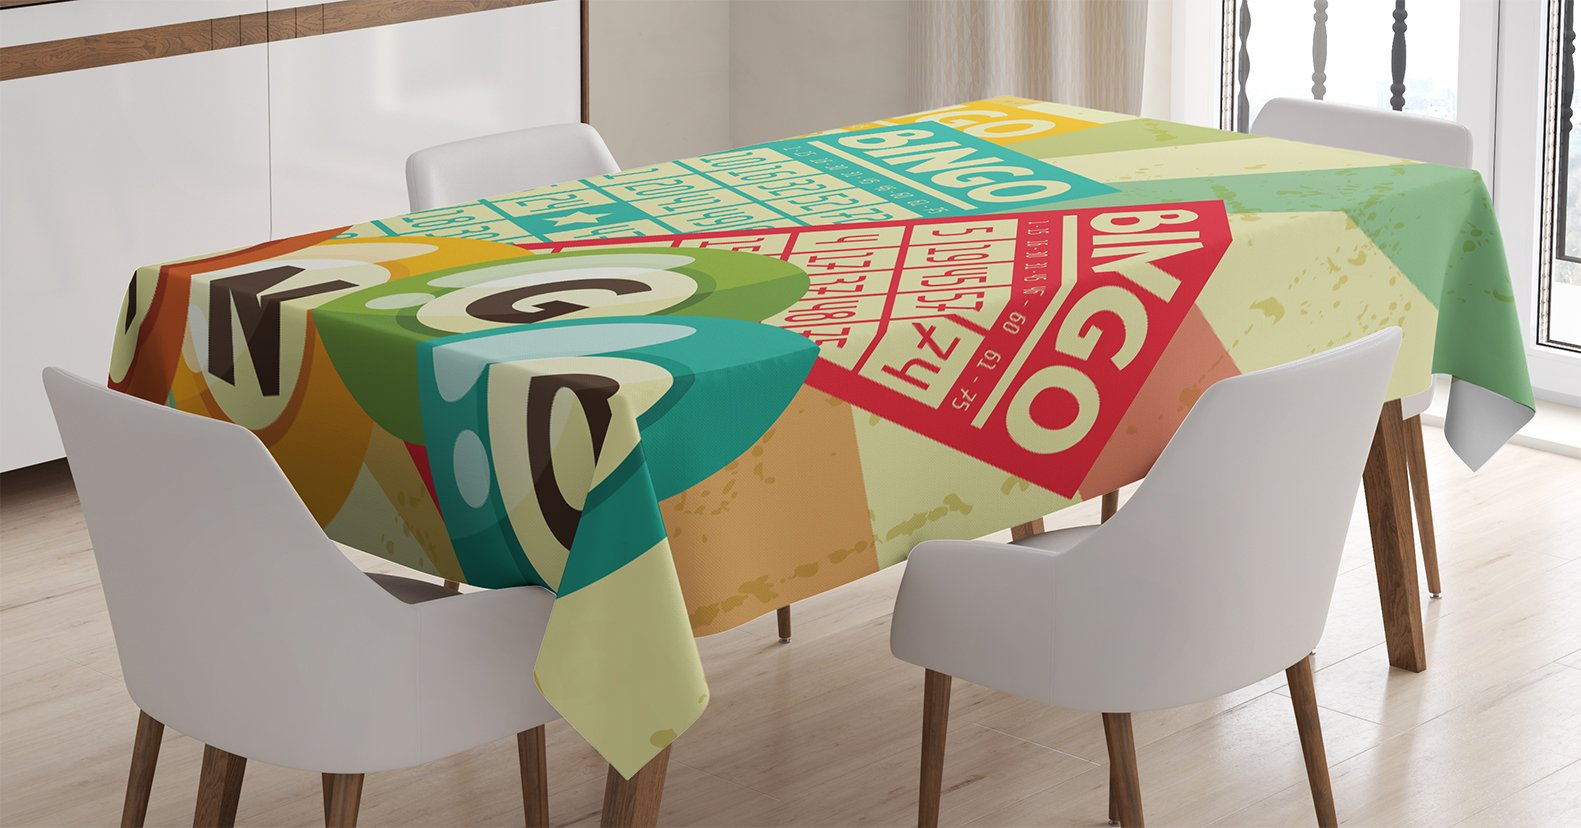 Ambesonne Vintage Decor Tablecloth, Bingo Game with Ball and Cards Pop Art Stylized Lottery Hobby Celebration Theme, Dining Room Kitchen Rectangular Table Cover, 52 X 70 inches, Multi by Ambesonne